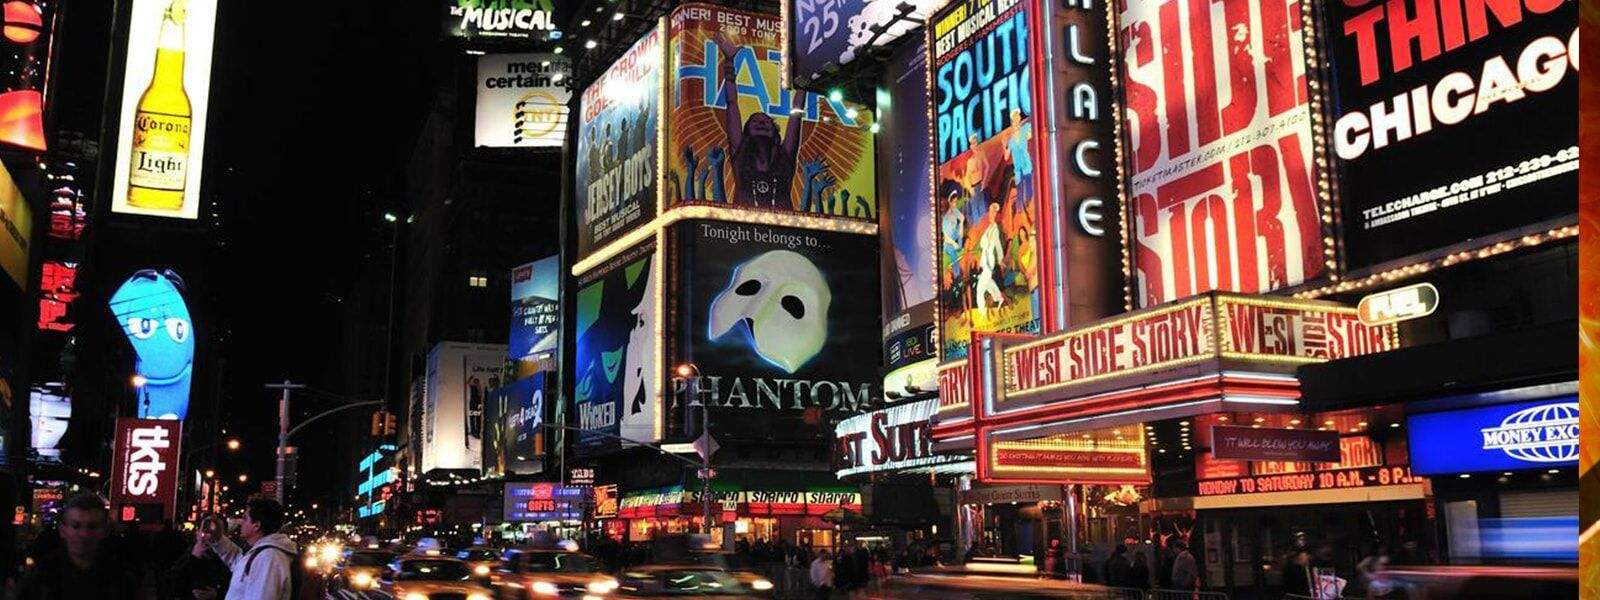 Times Square where advertisements for shows on Broadway are displayed